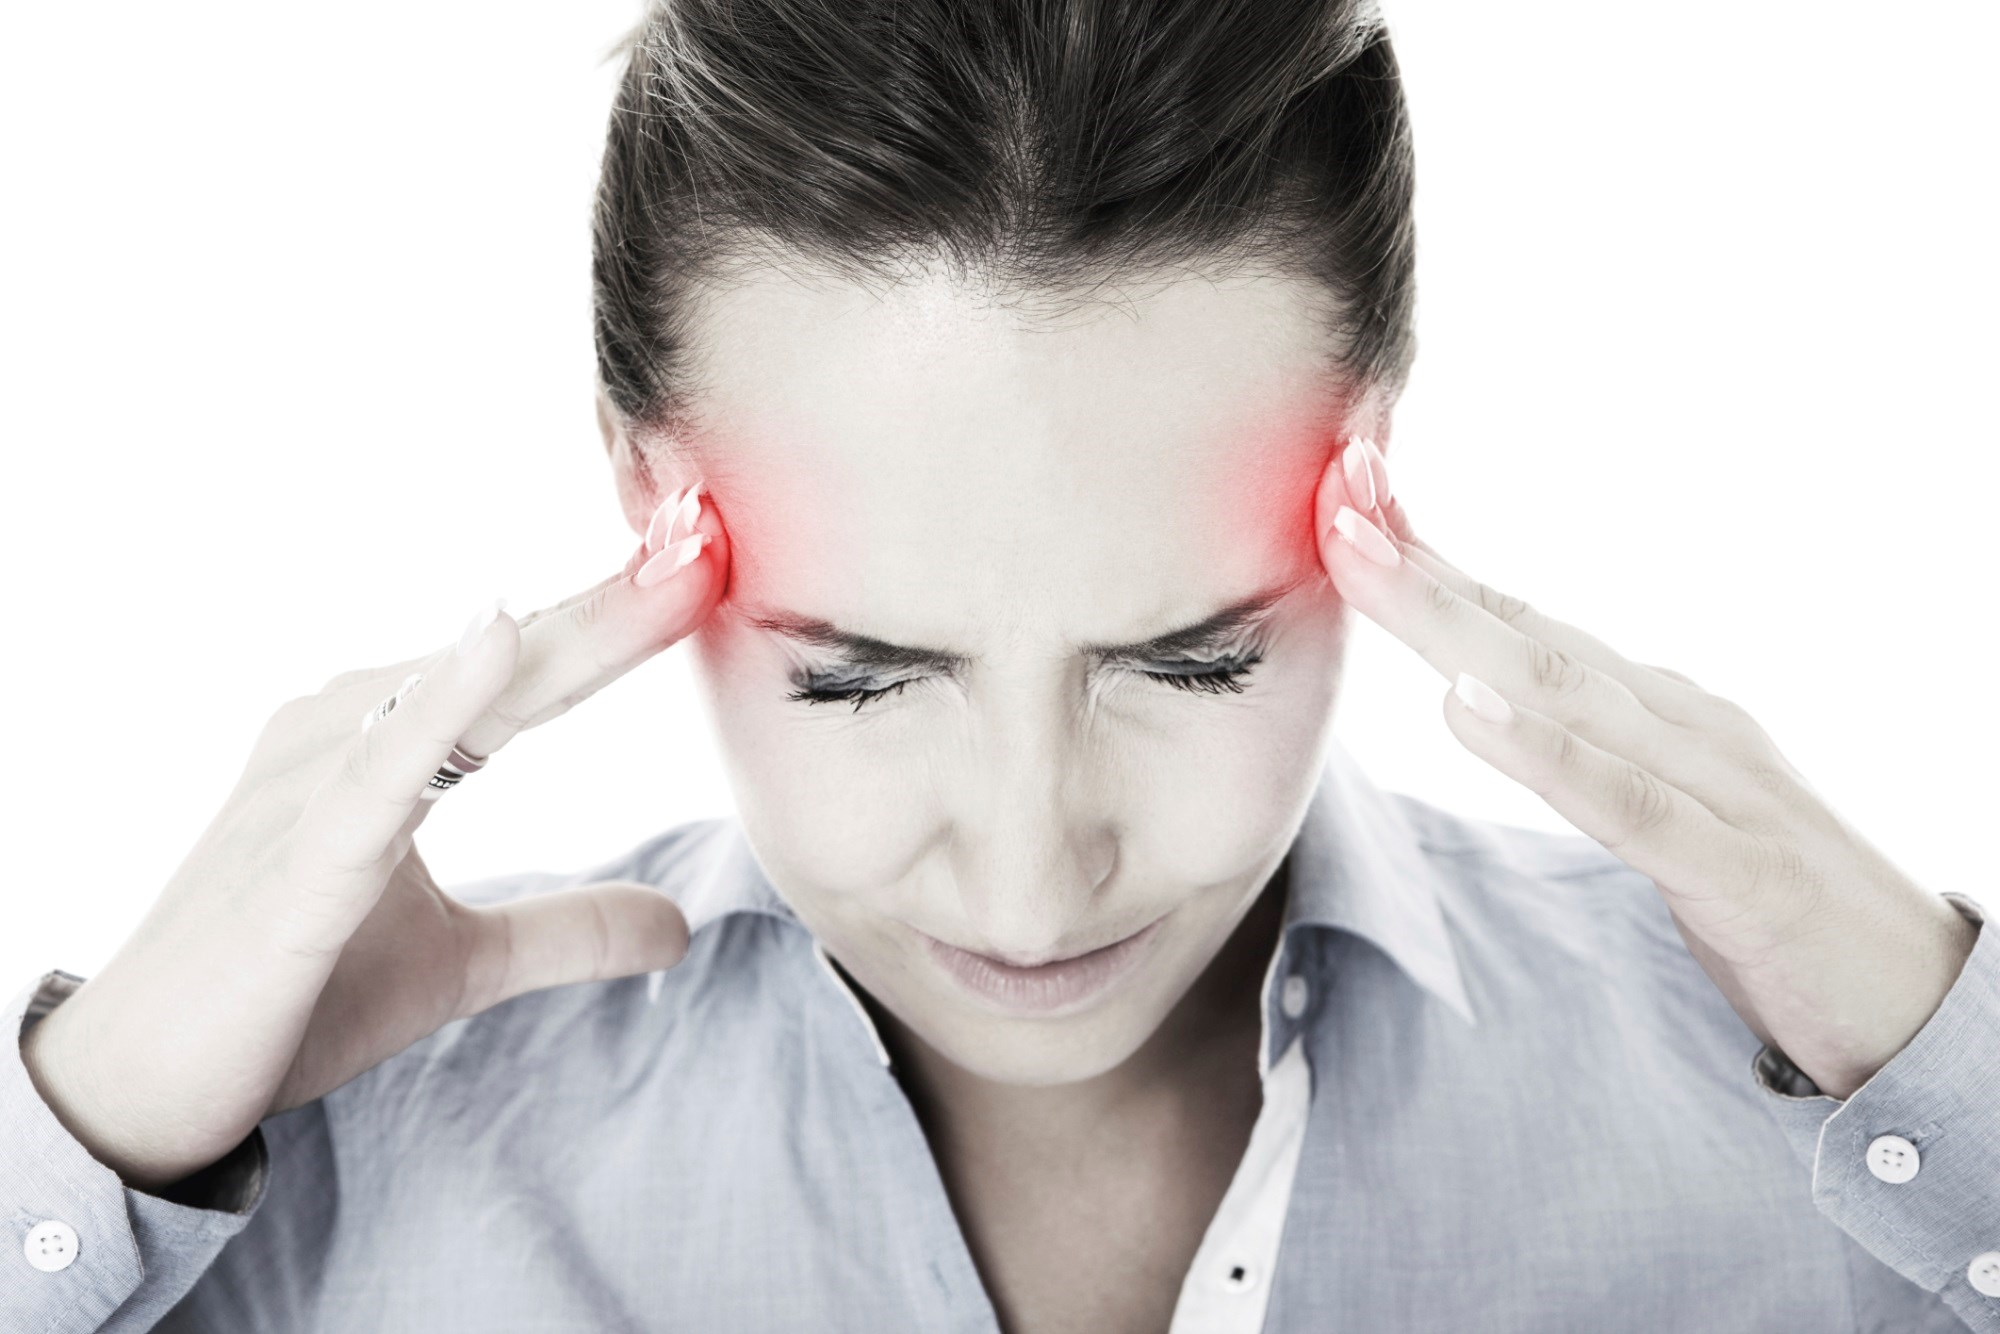 CGRP is believed to play a significant role in the pathophysiology of migraine.